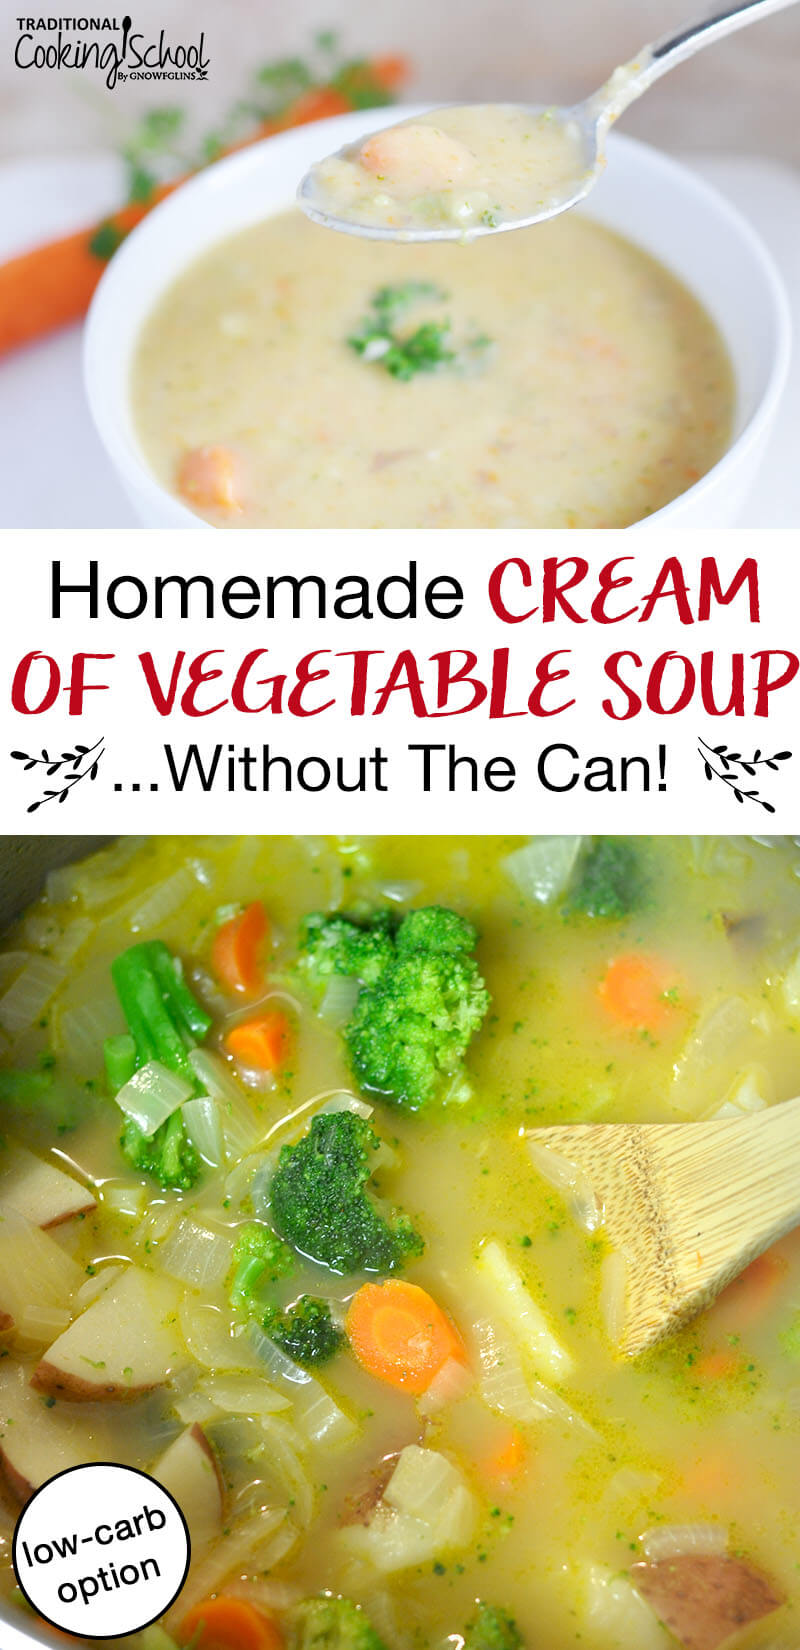 "photo collage of creamy veggie soup with text overlay: ""Homemade Cream of Vegetable Soup Without the Can!"""